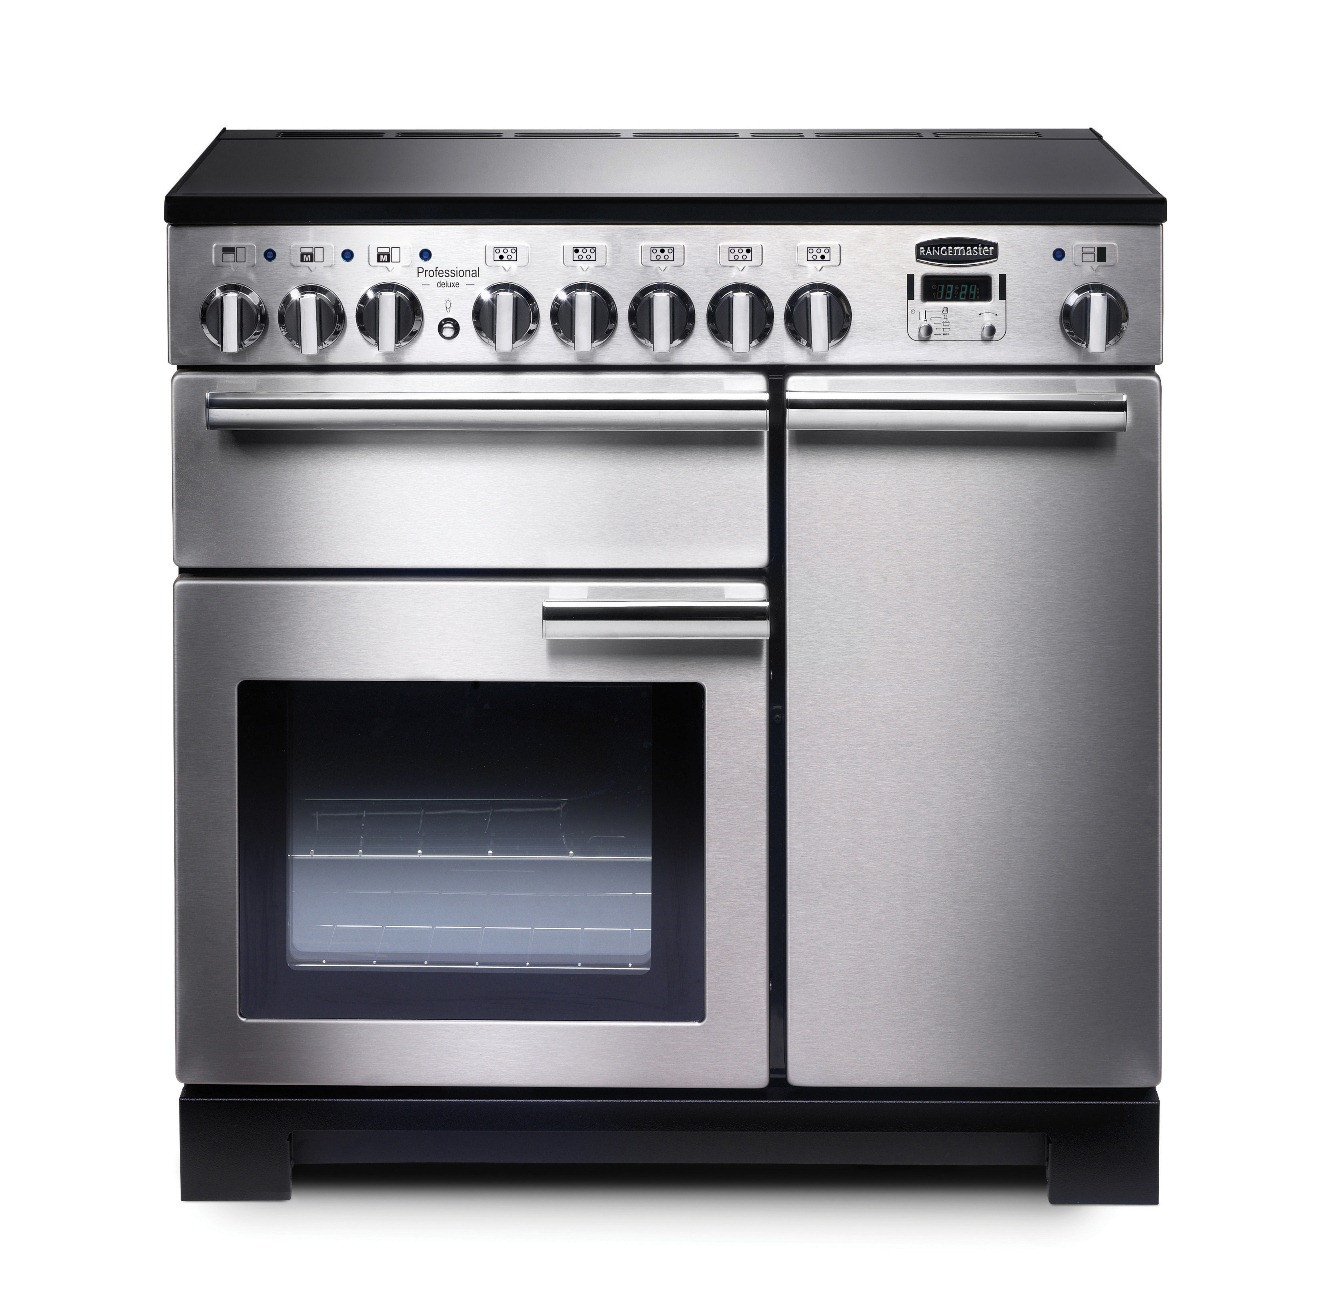 Rangemaster Professional Deluxe 90 Induction Stainless Steel Range Cooker PDL90EISS/C 97860